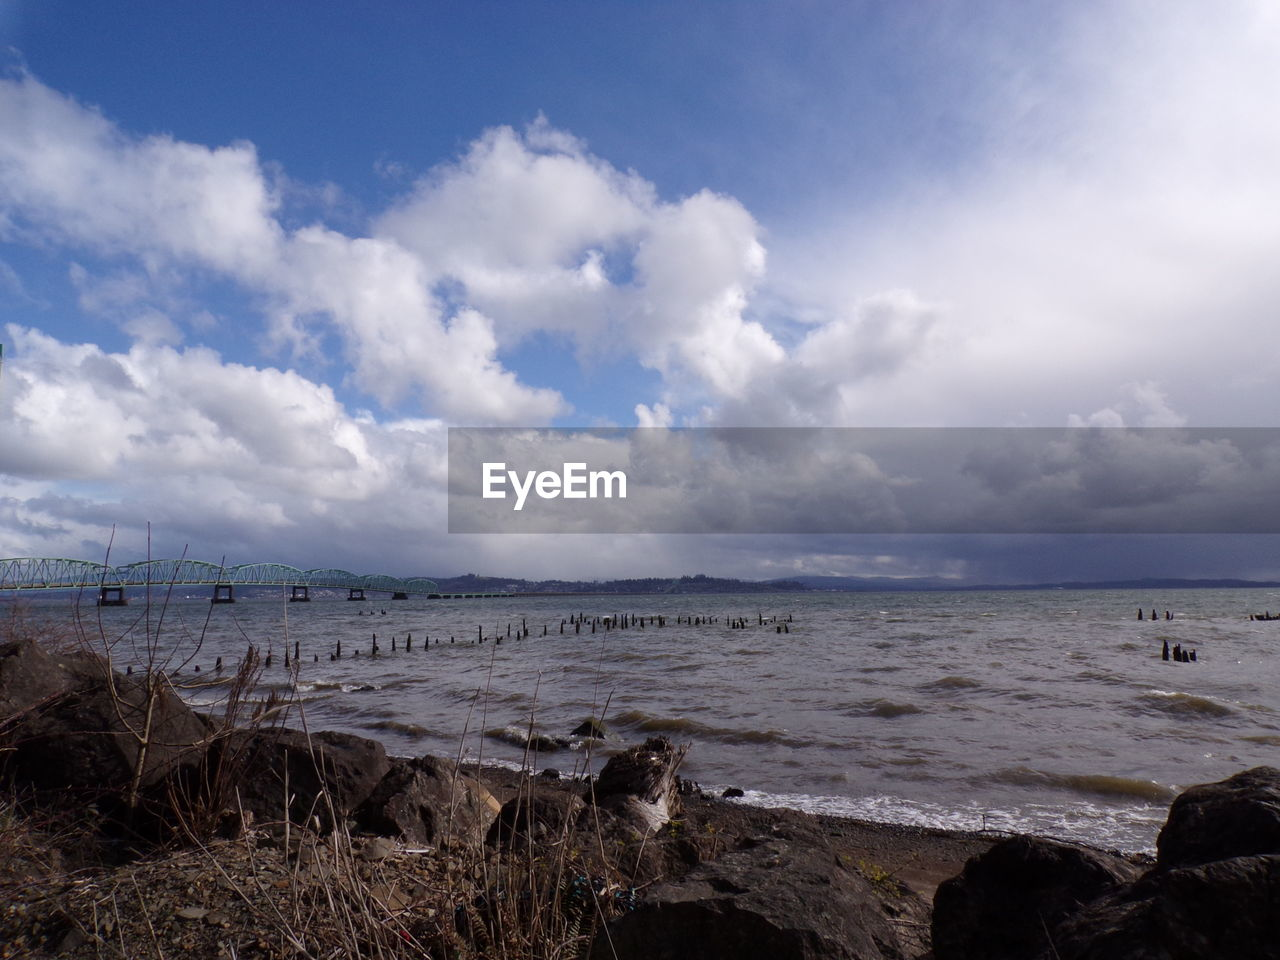 sea, water, scenics, nature, beauty in nature, sky, tranquility, tranquil scene, horizon over water, beach, outdoors, cloud - sky, day, no people